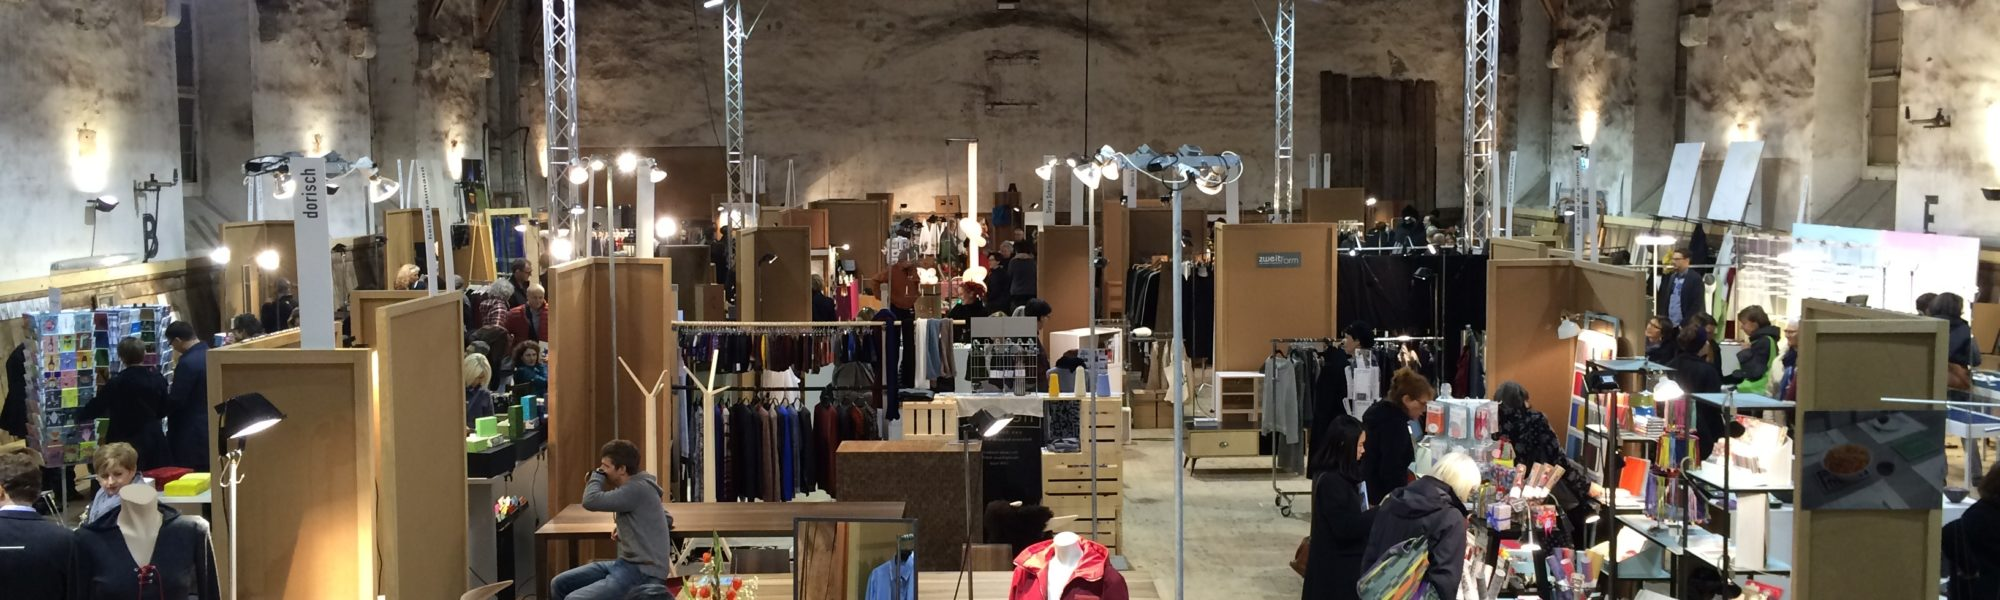 Designmesse in&out